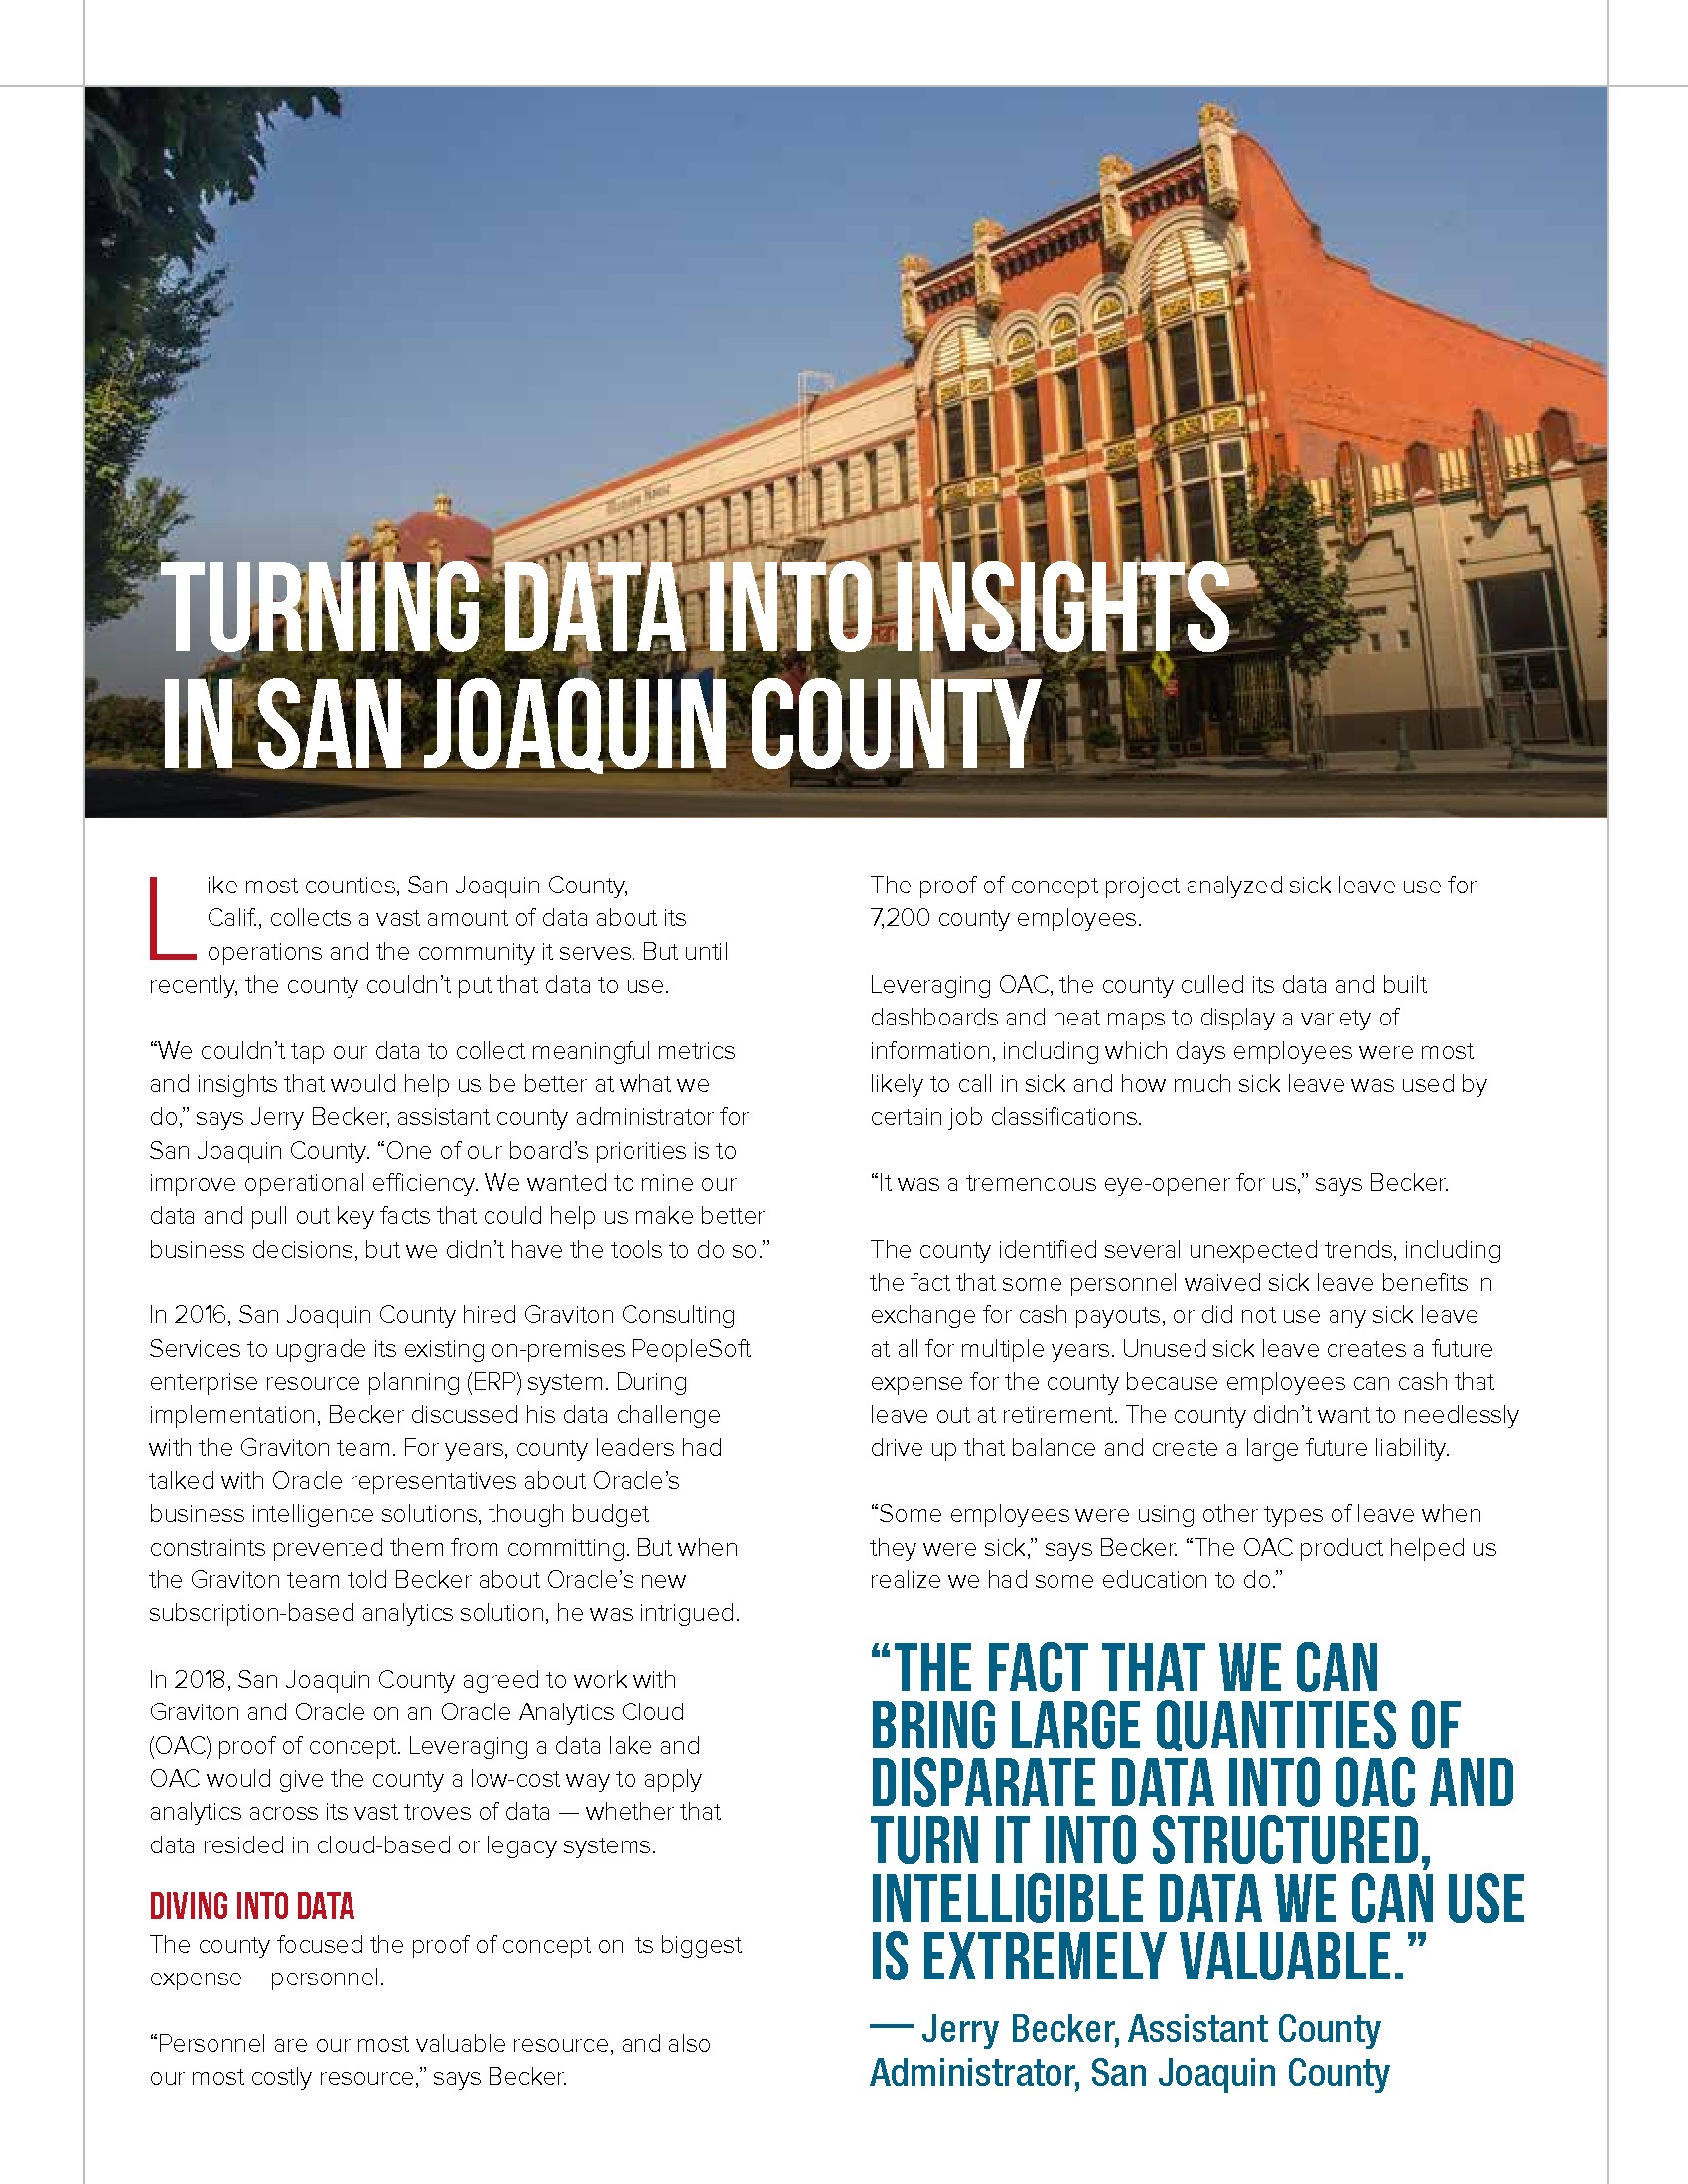 Turning Data Into Insights in San Joaquin County